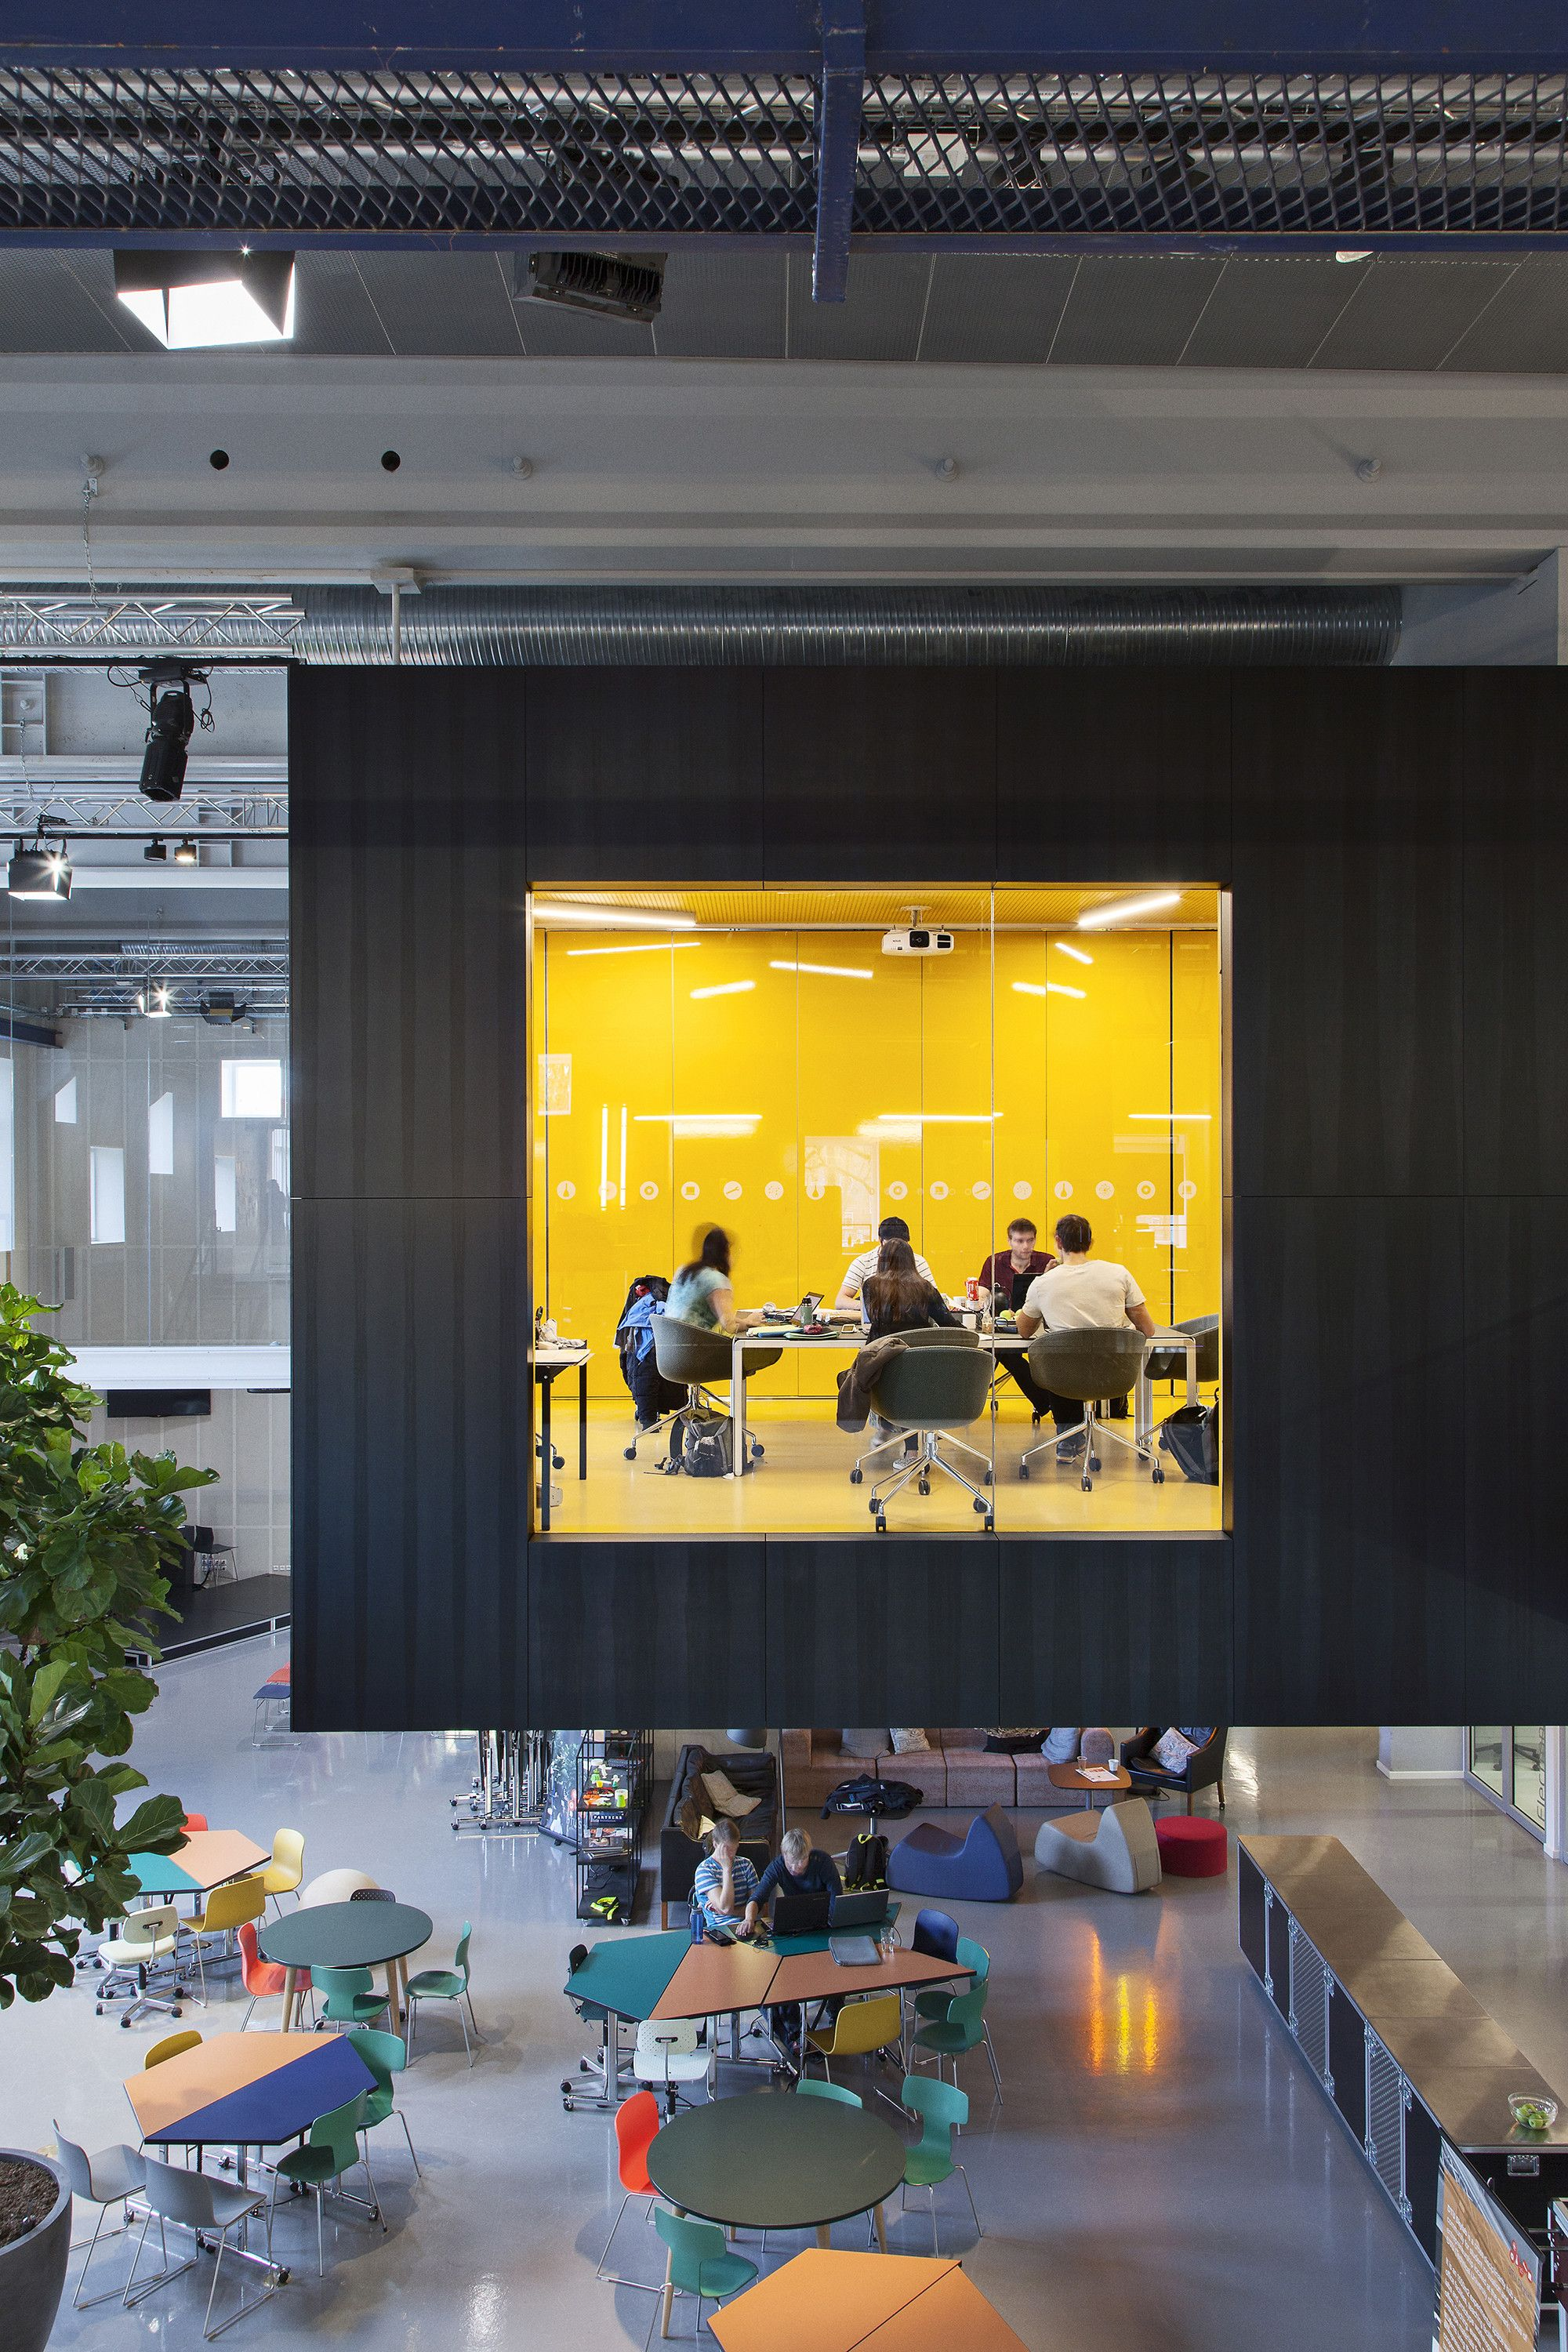 High Quality Image 1 Of 11 From Gallery Of DTU Skylab / Juul Frost Arkitekter.  Photograph By STAMERS KONTOR